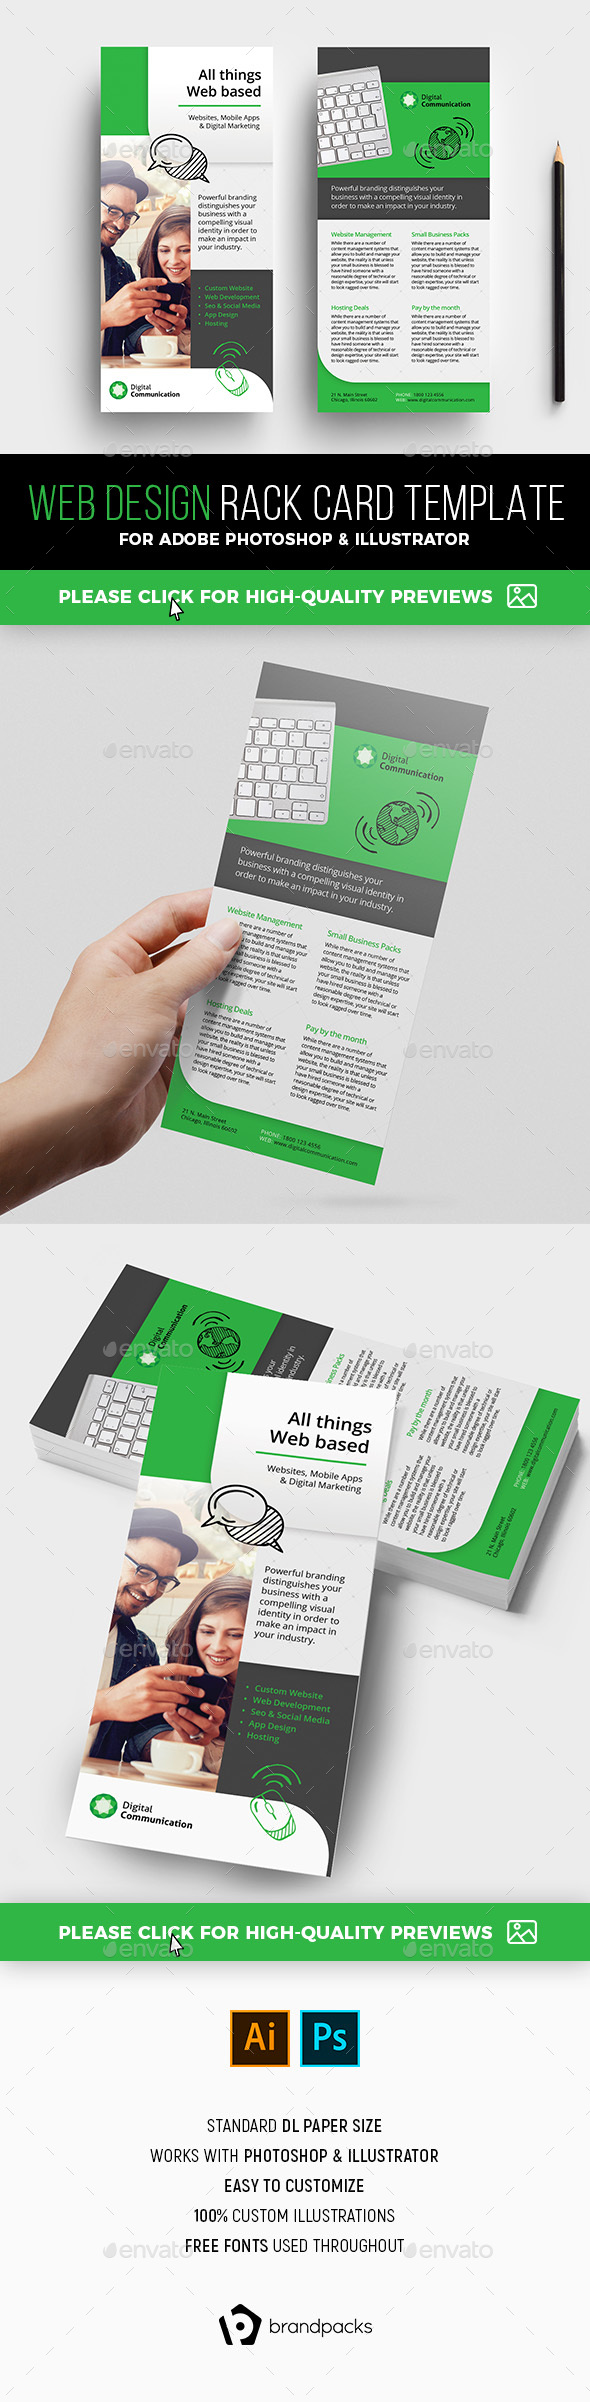 Web Design Service Rack Card Template - Corporate Flyers